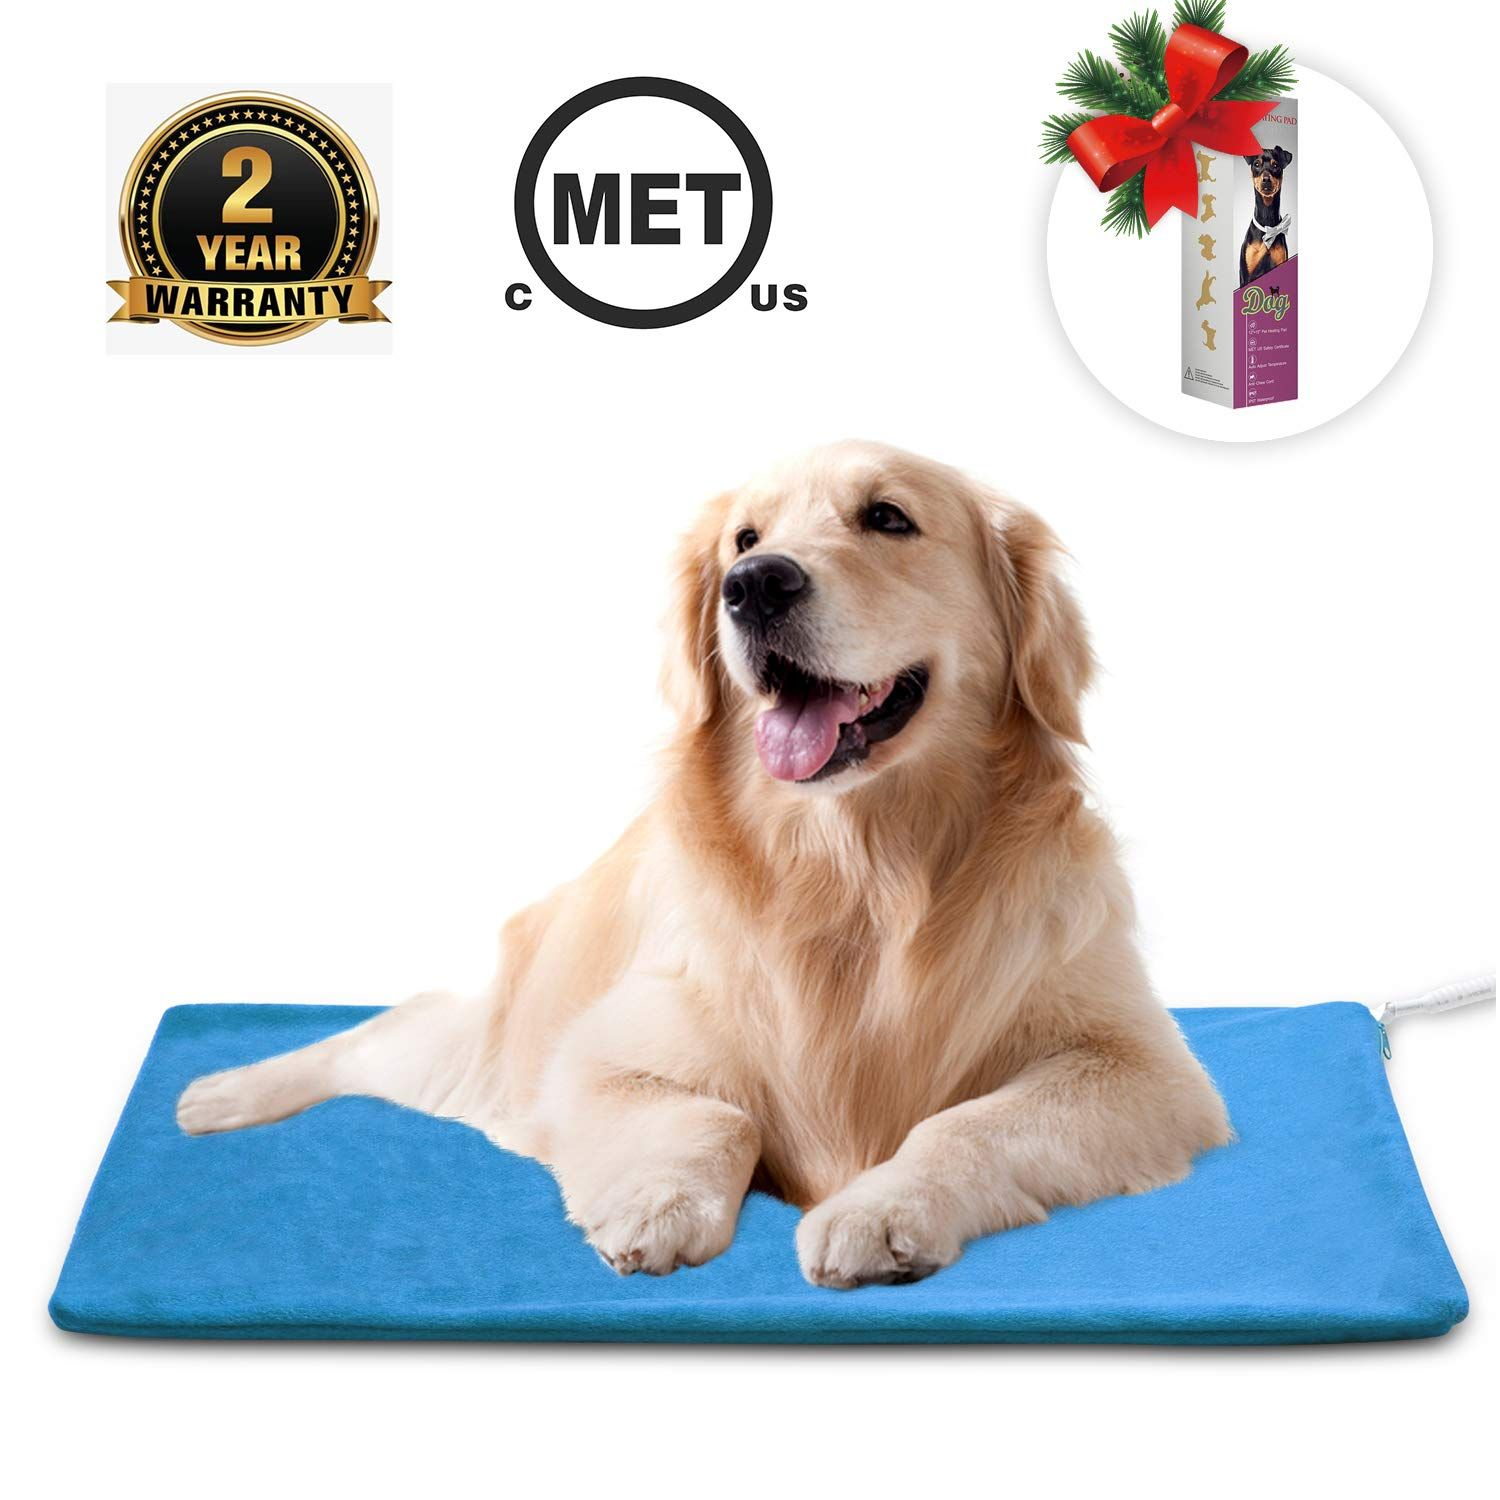 Marunda Pet Heating Pad Cat Dog Electric Pet Heating Pad Indoor Waterproof Auto Constant Temperature Chew Resistant In 2020 Pet Heating Pad Dog Bed Mat Cool Dog Beds